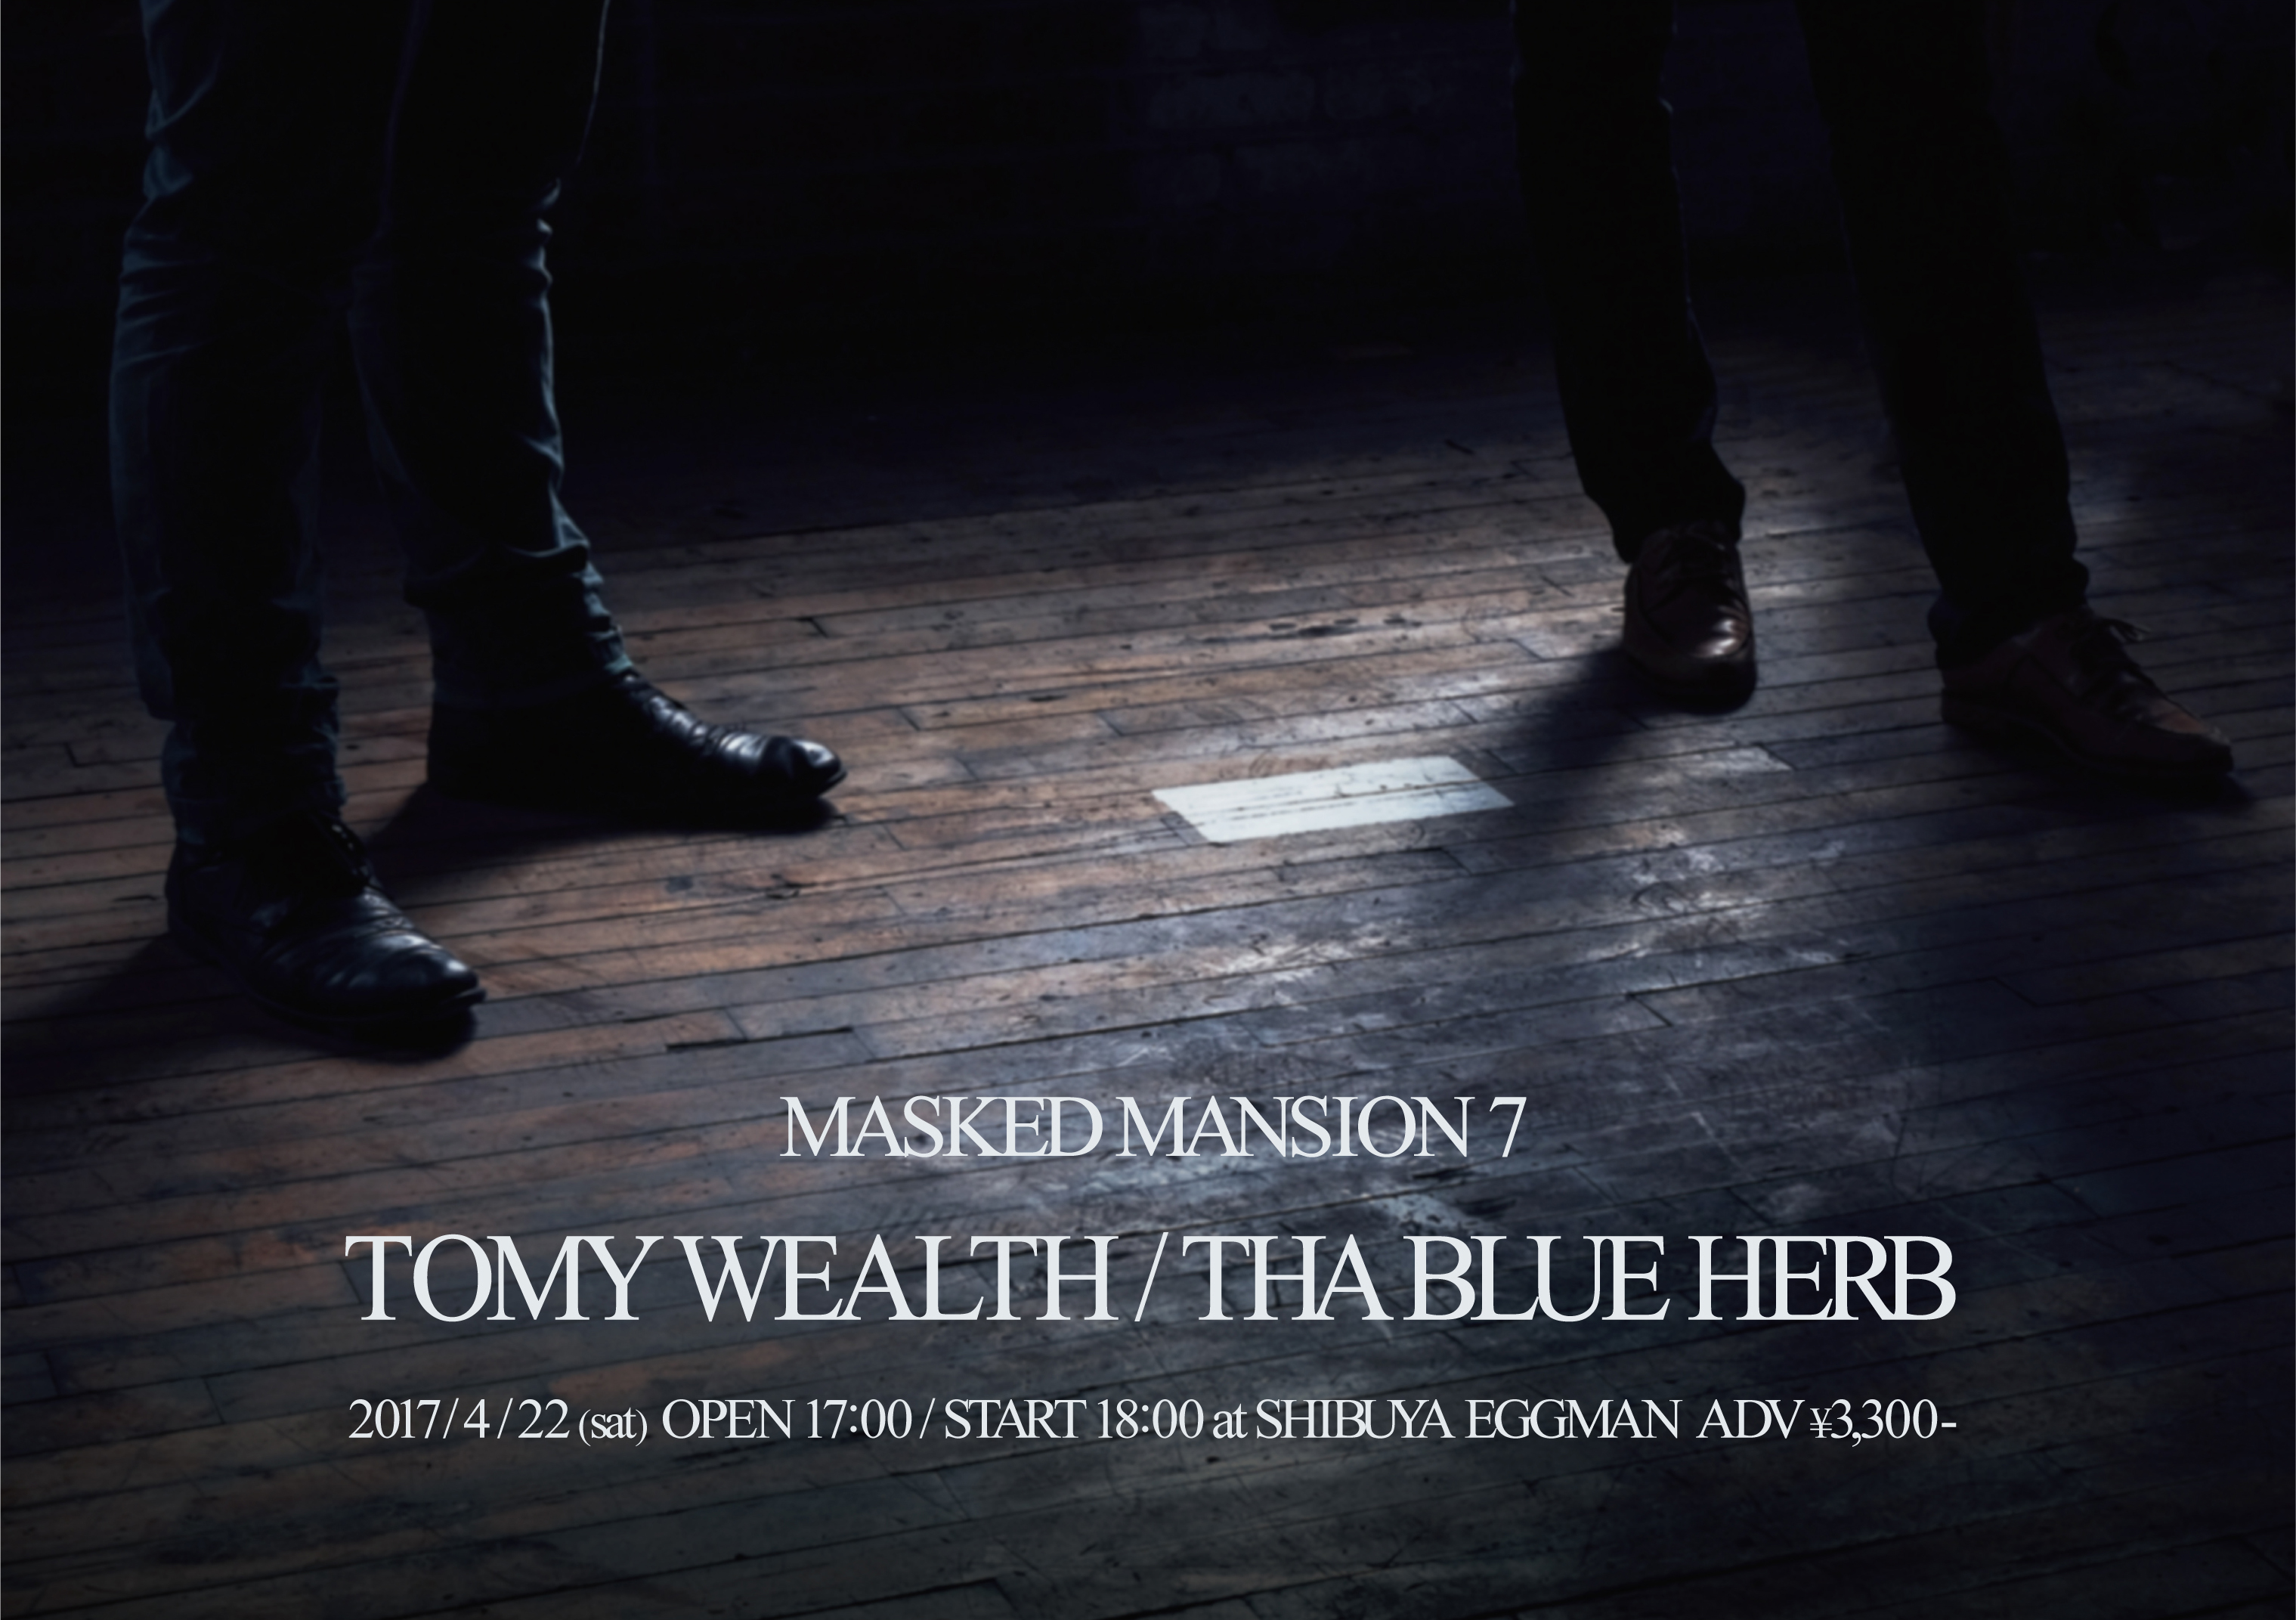 TOMY WEALTH presents 『MASKED MANSION 7』